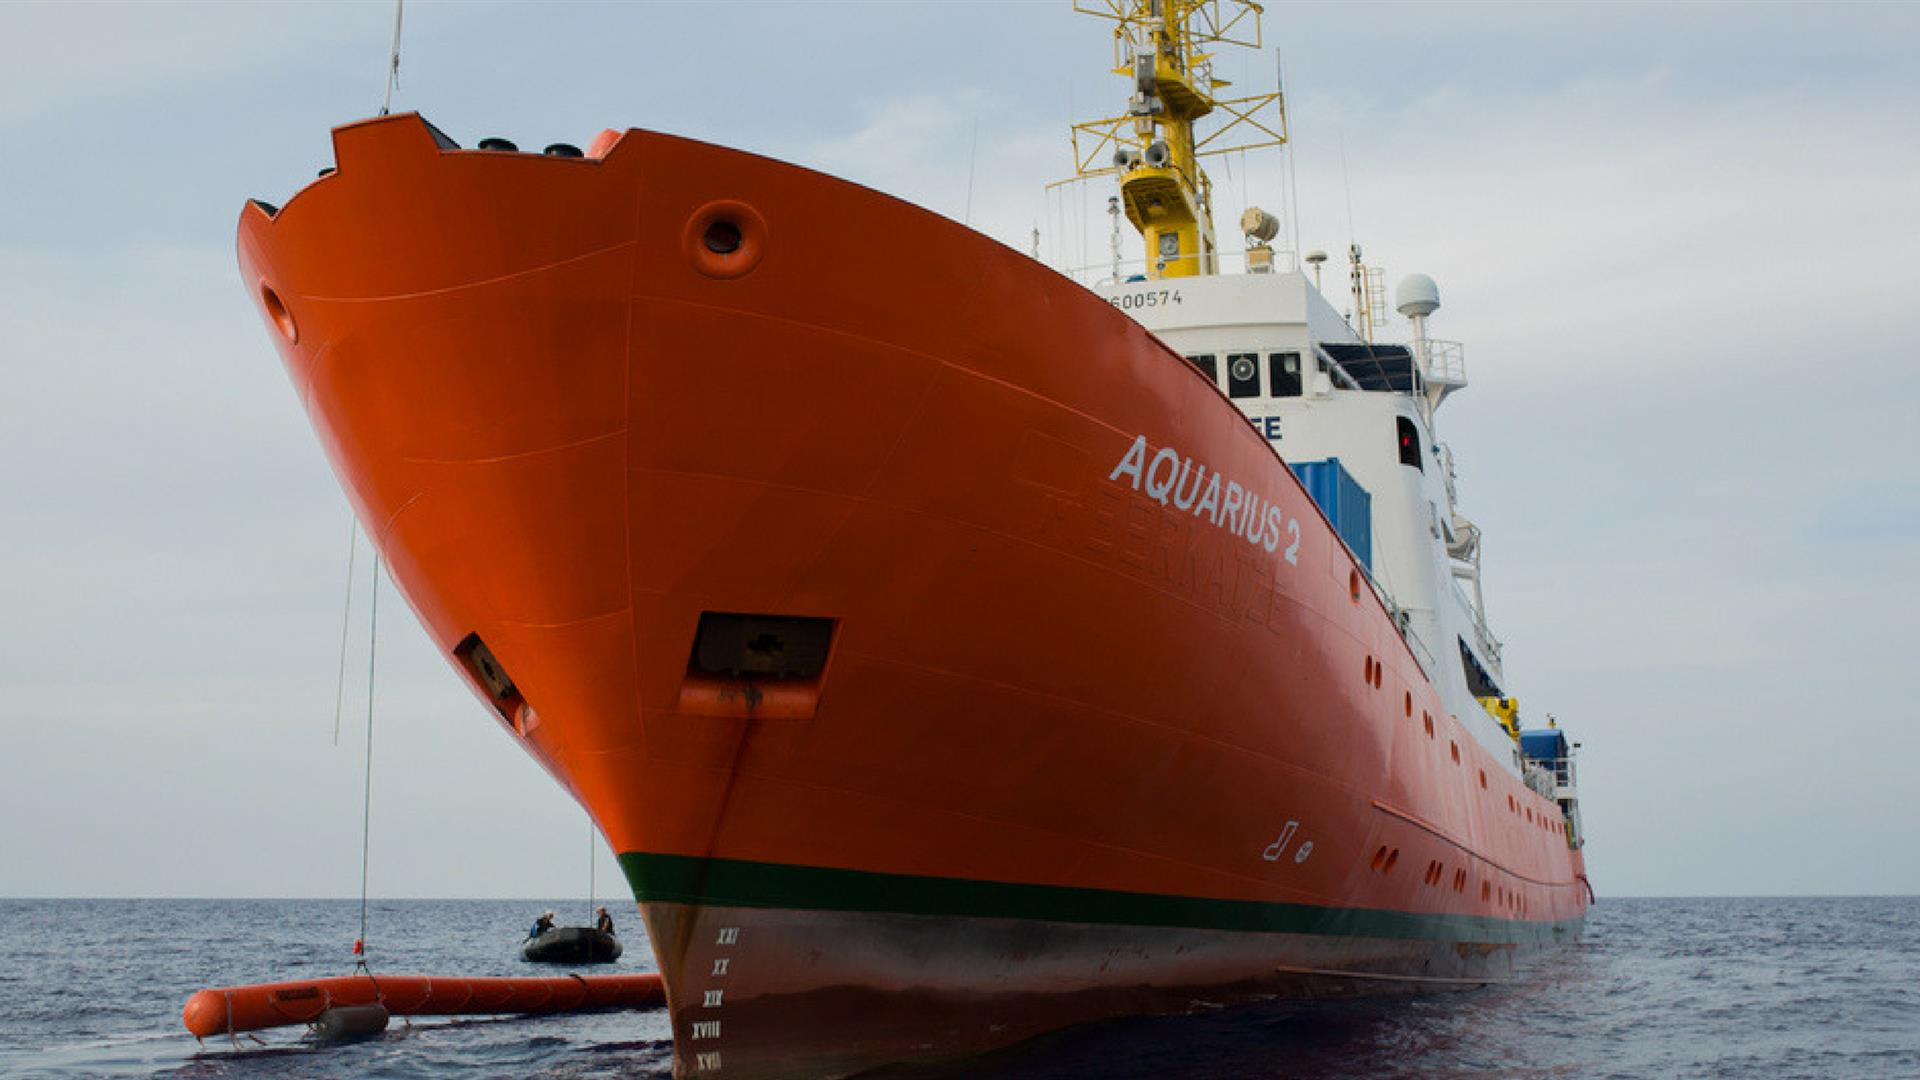 Sequestro Aquarius @Msf